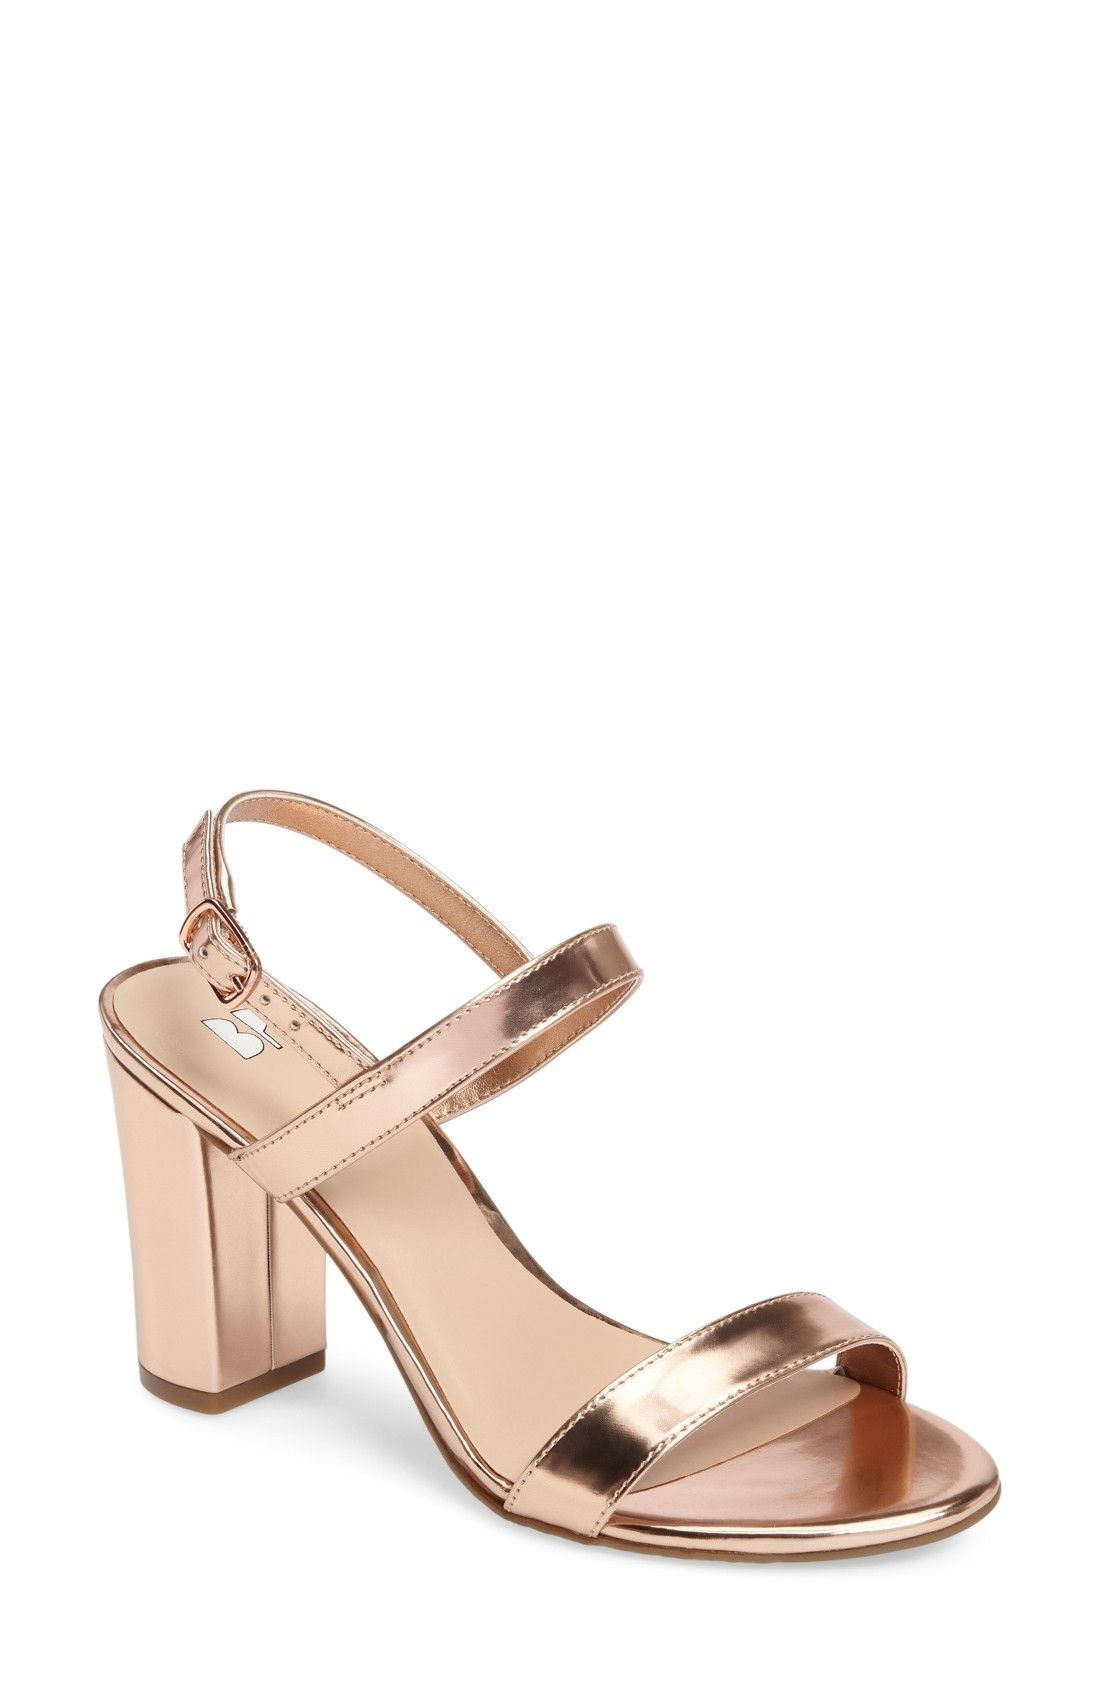 The Best Wedding Guest Shoes Including Heels That Don T Sink In Grass Wedding Guest Shoes Slingback Sandal Size 11 Women Shoes